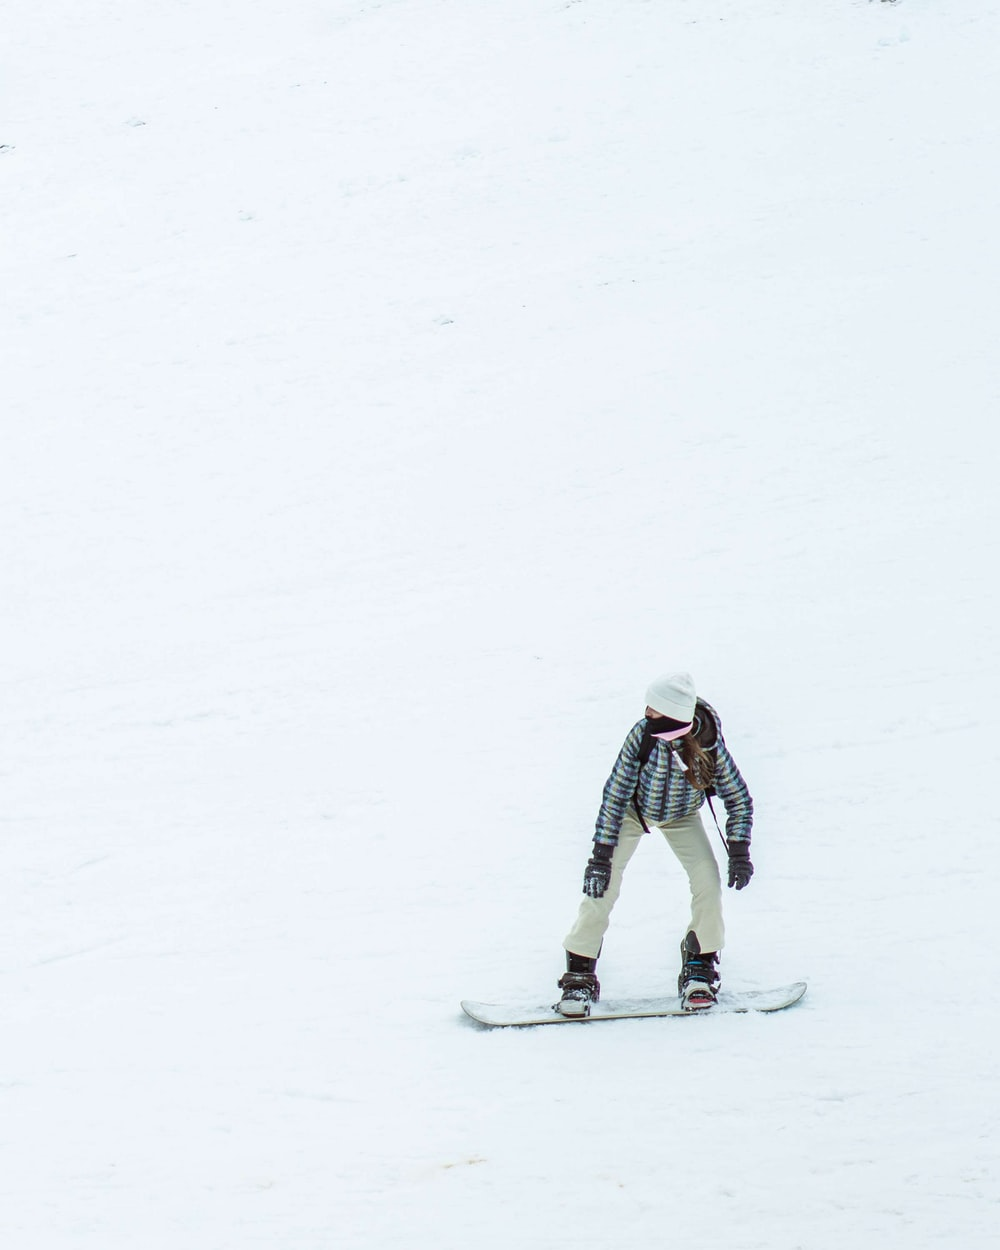 person in white jacket and black pants riding snow ski